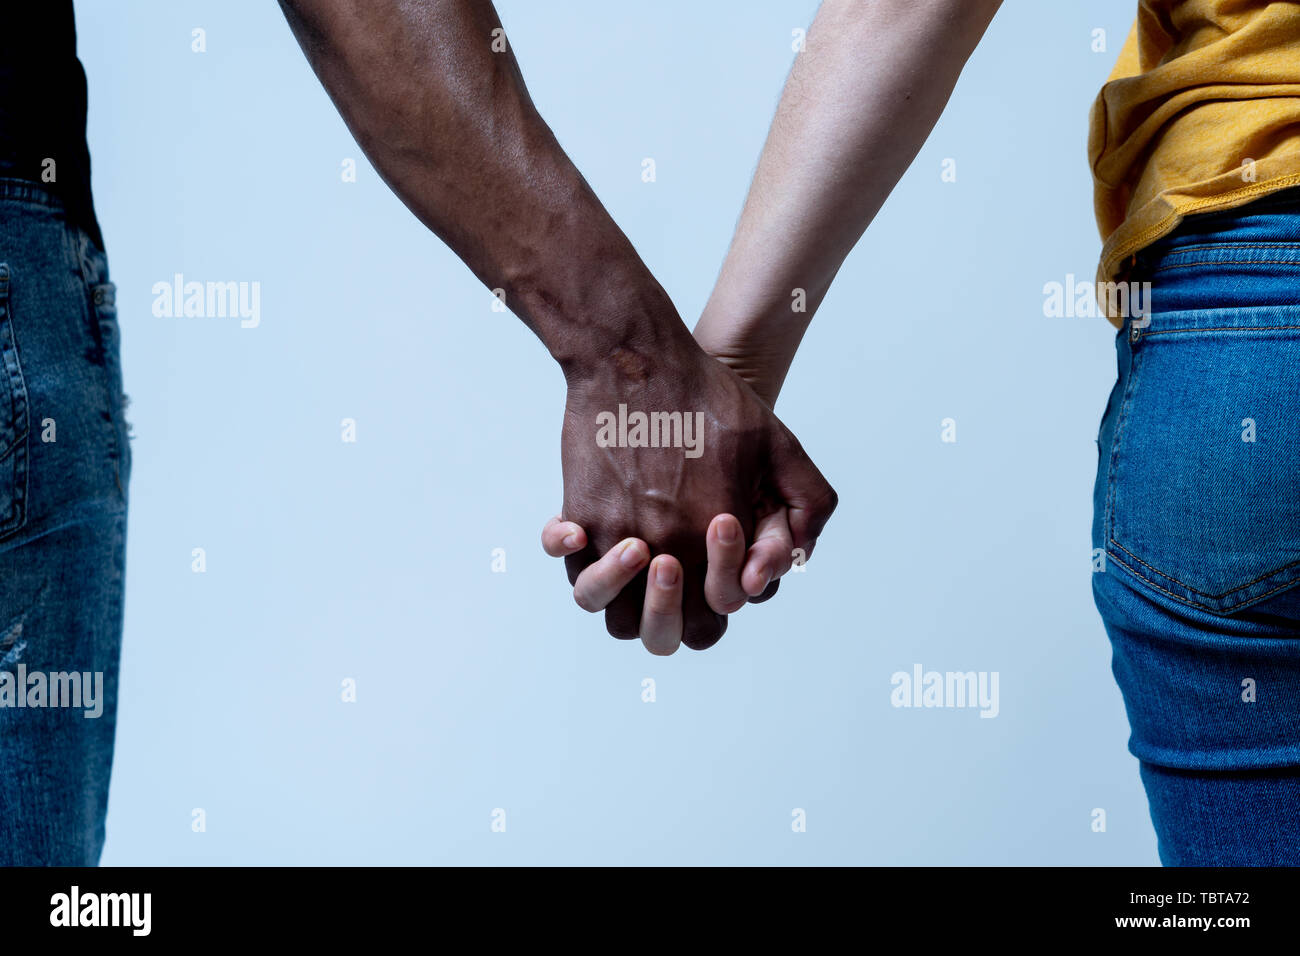 Multiracial couple holding hands together in love. White and black skin arms holding together. Conceptual image of world unity interracial love and un - Stock Image